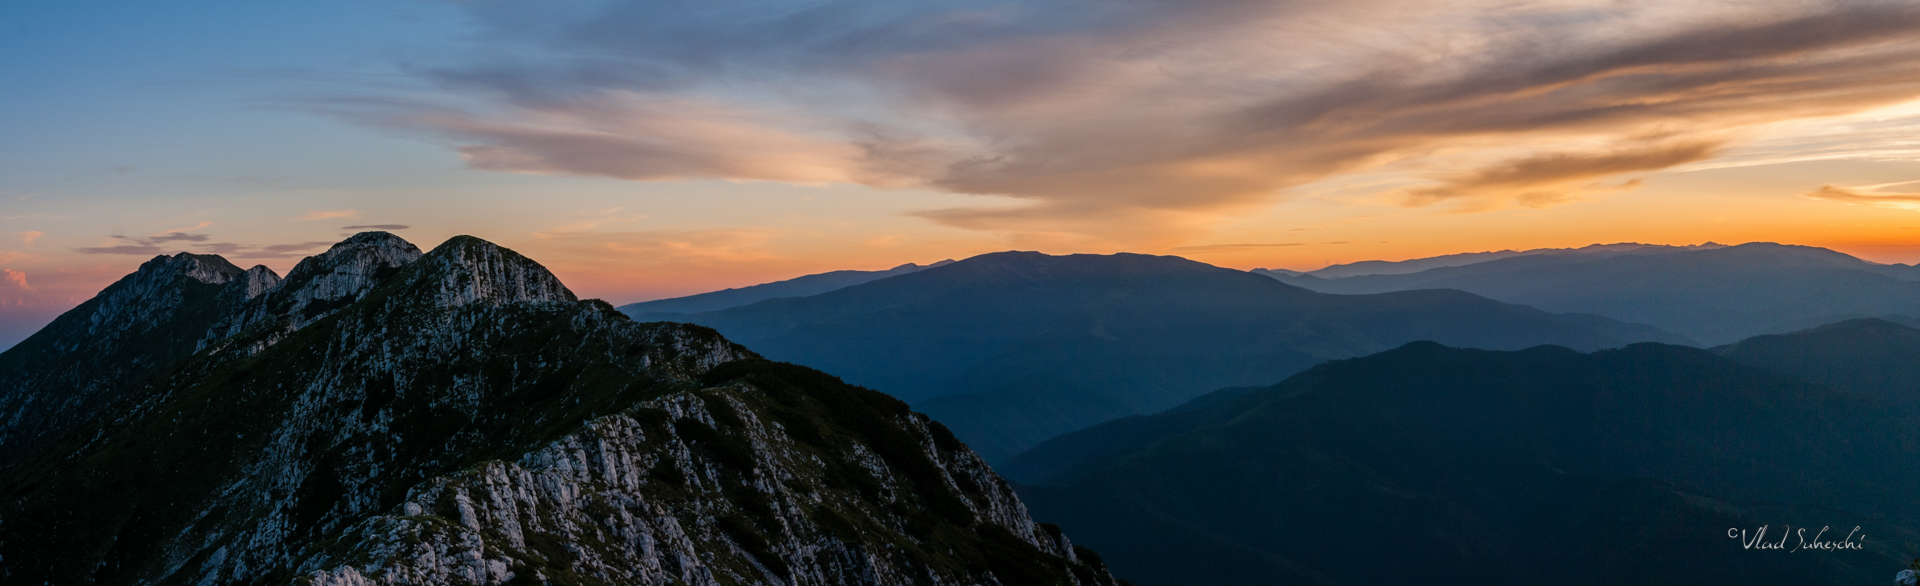 Sunset in Piatra Craiului Mountains, The Carpathians, Romania